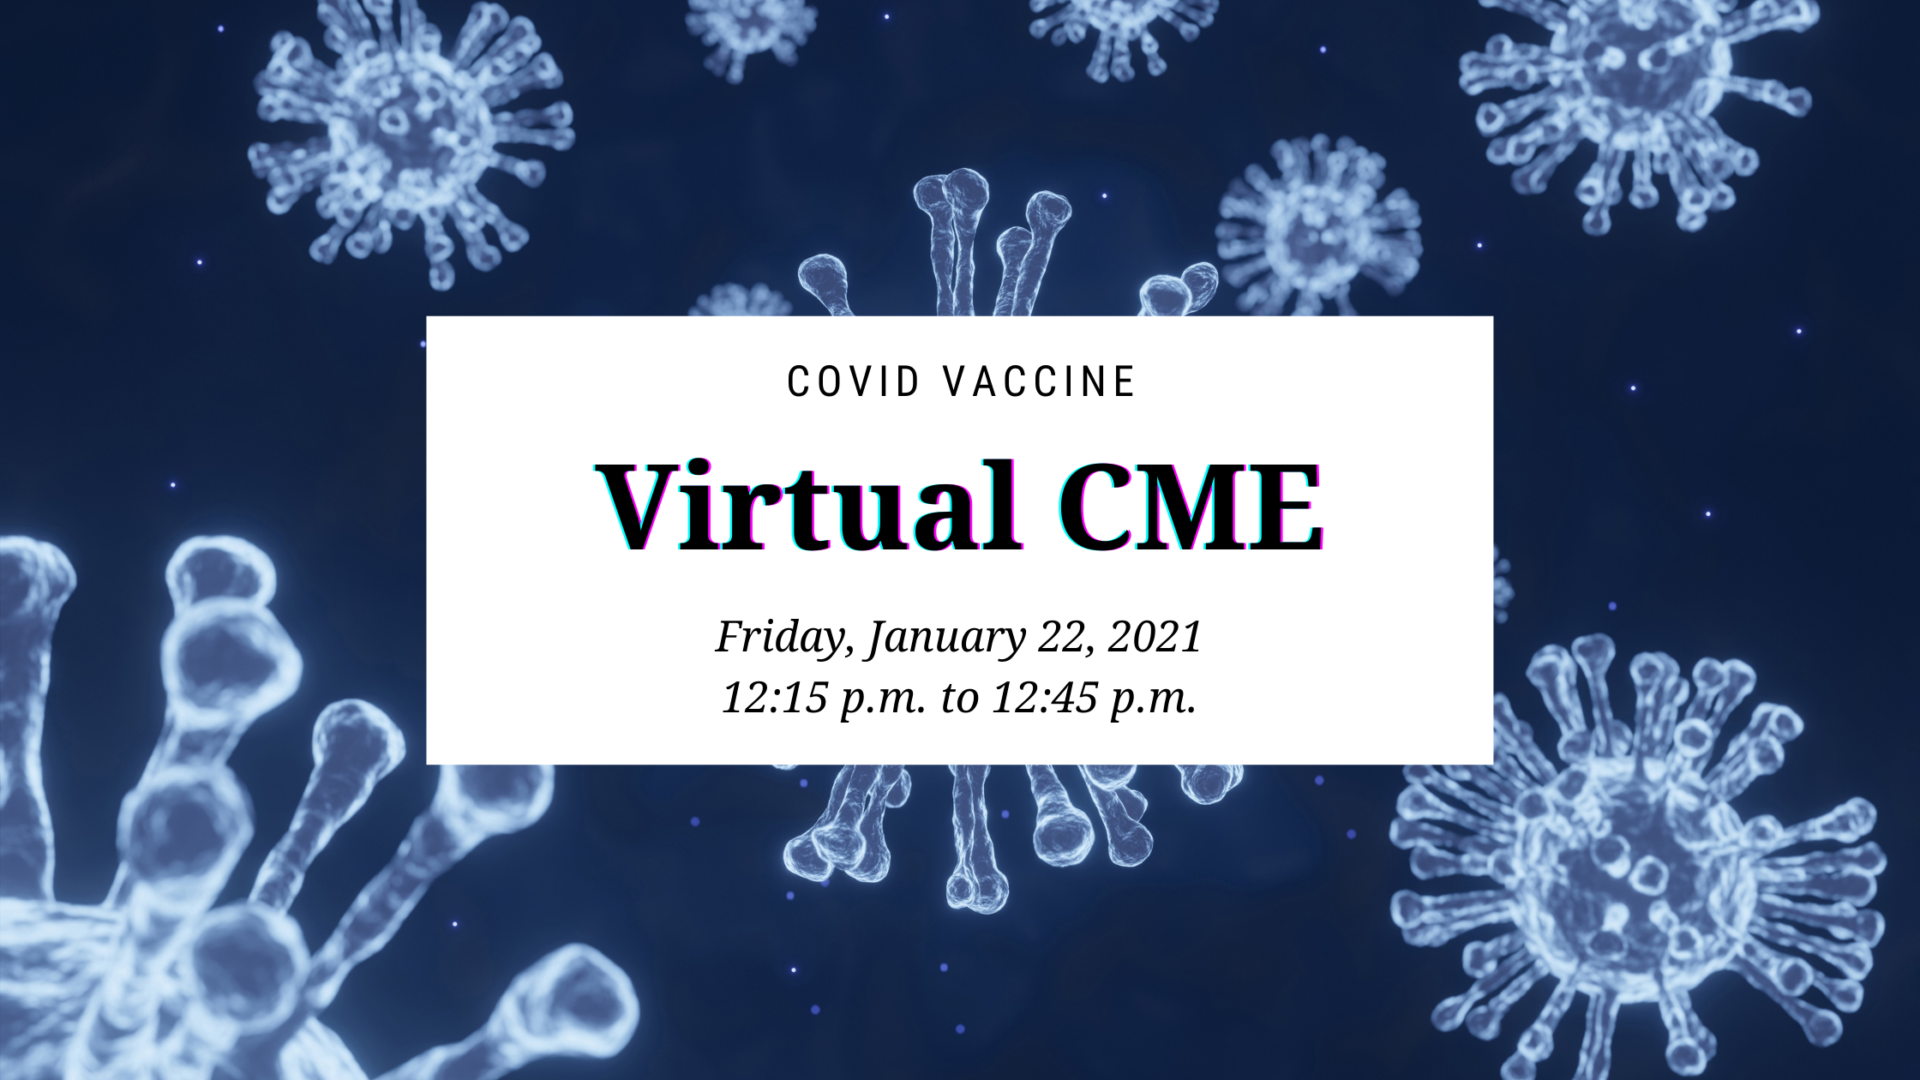 A header image with basic information about the CME event.